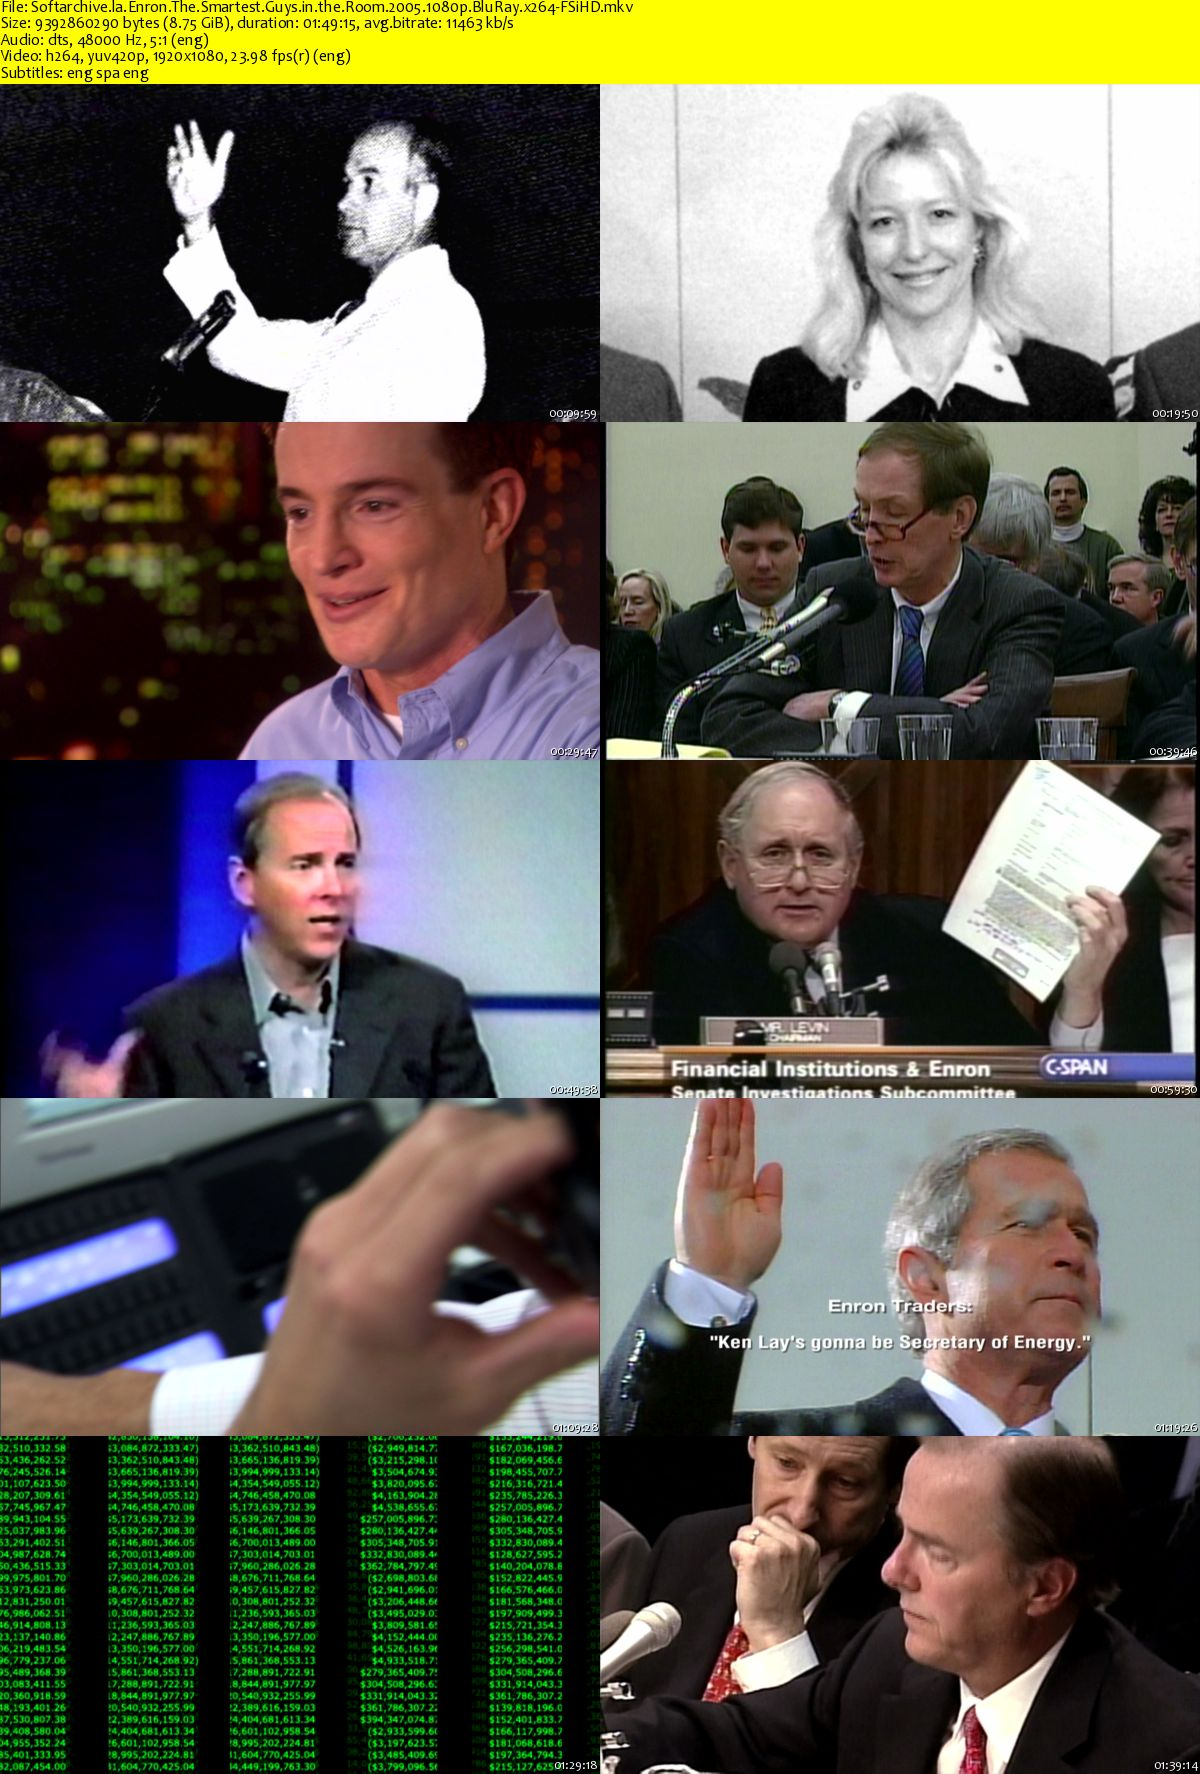 enron the smartest guys in the room 2 essay Corporate scandal crime - enron: the smartest guys in the room.